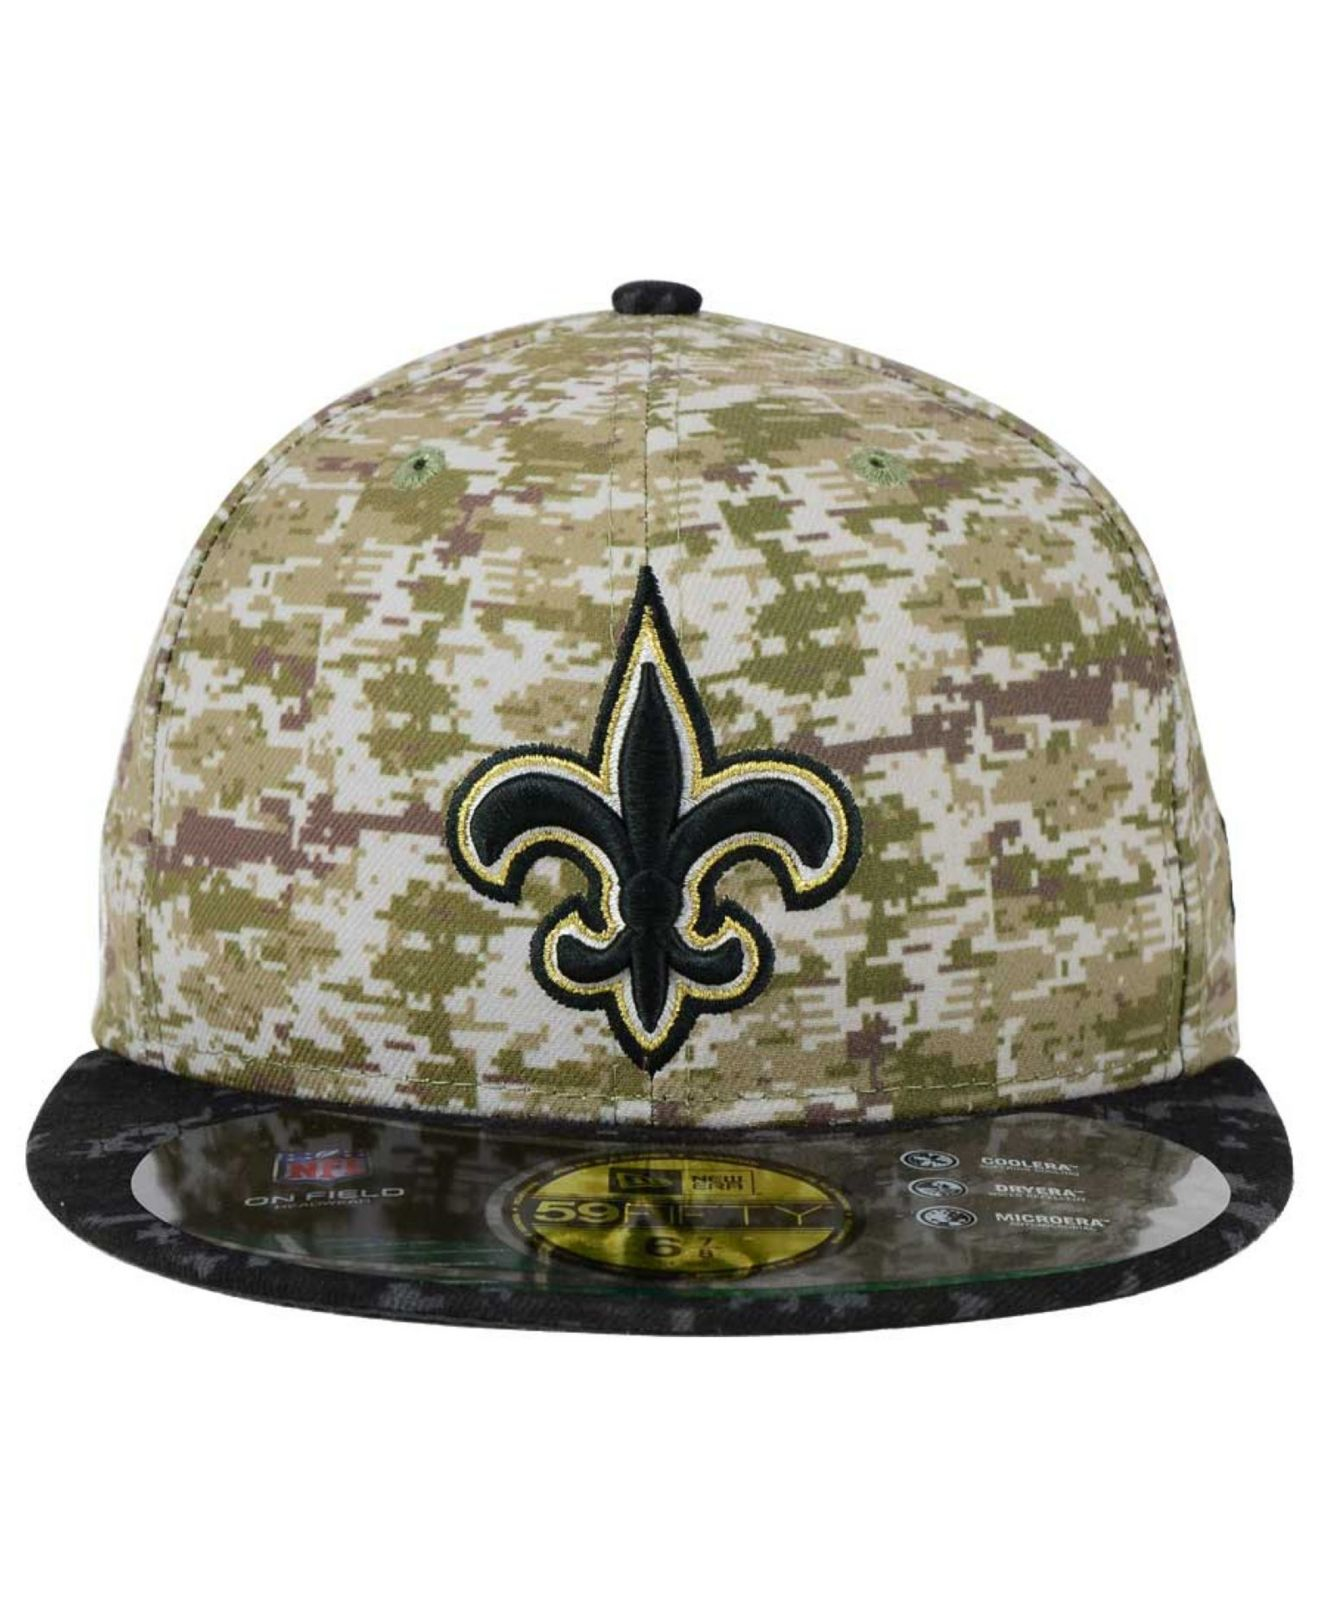 Lyst - KTZ New Orleans Saints Salute To Service 59fifty Cap in Green ... 2d9210906